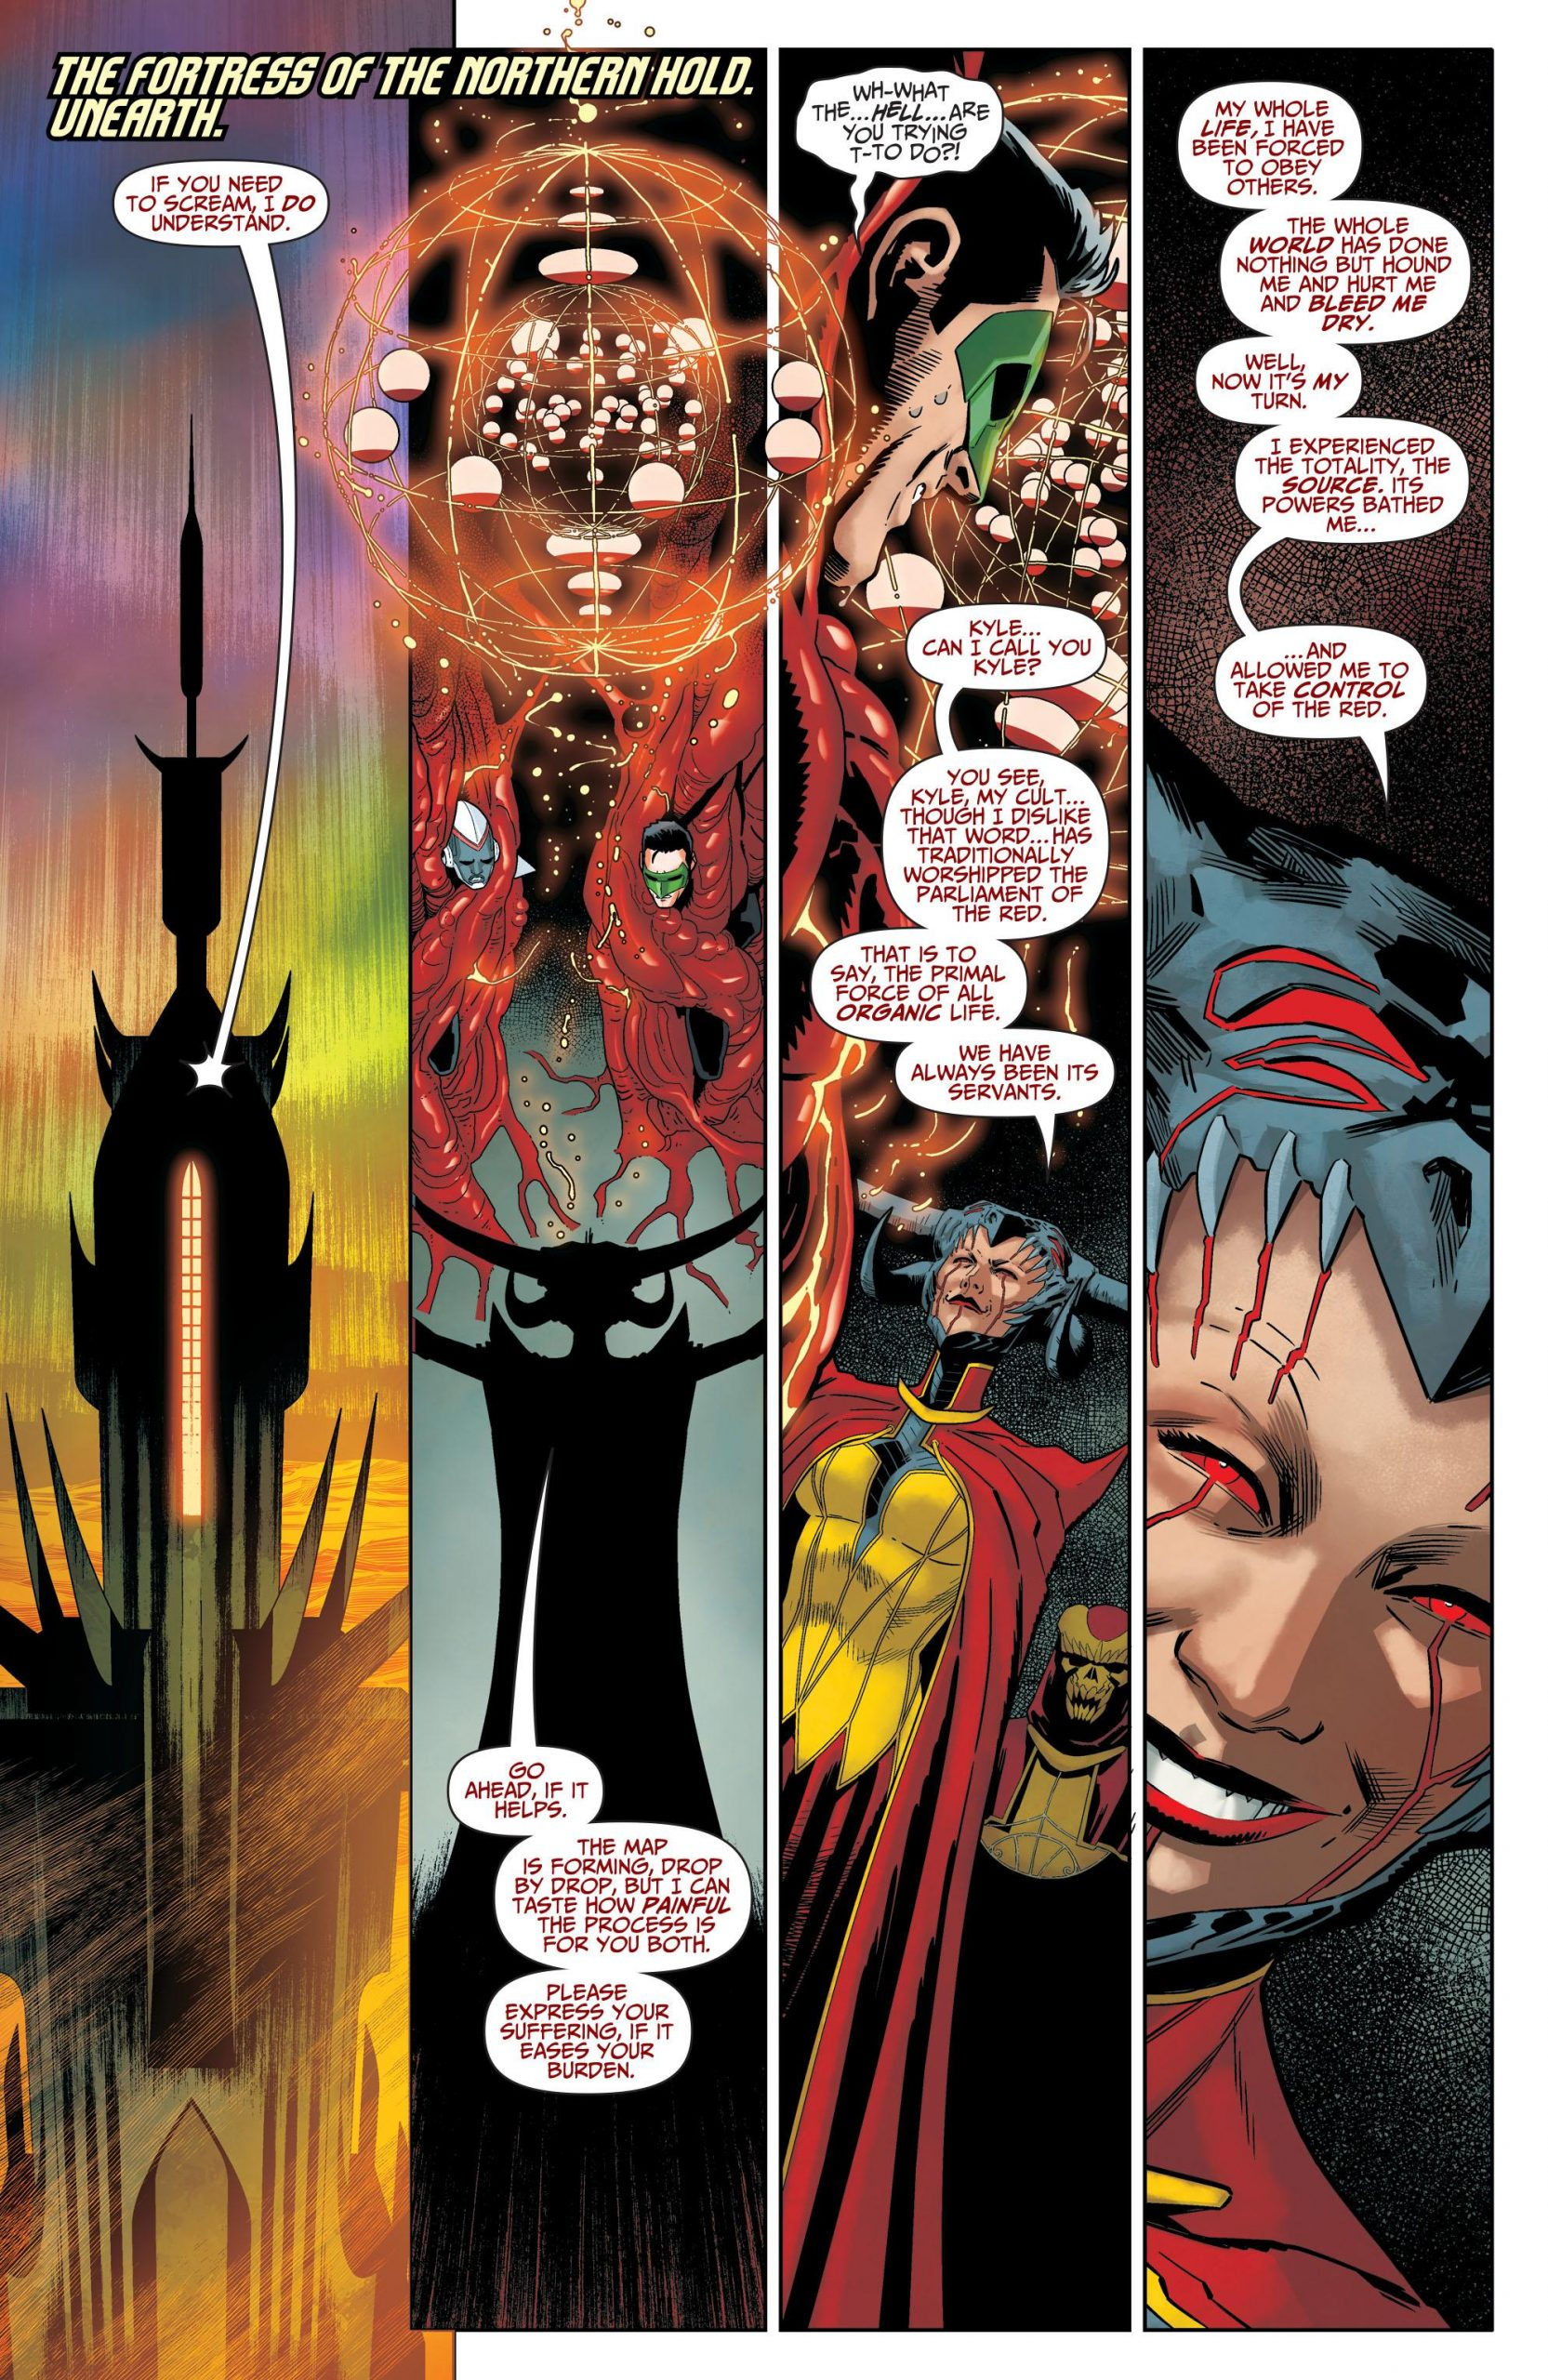 Titans v06 - Into the Bleed review